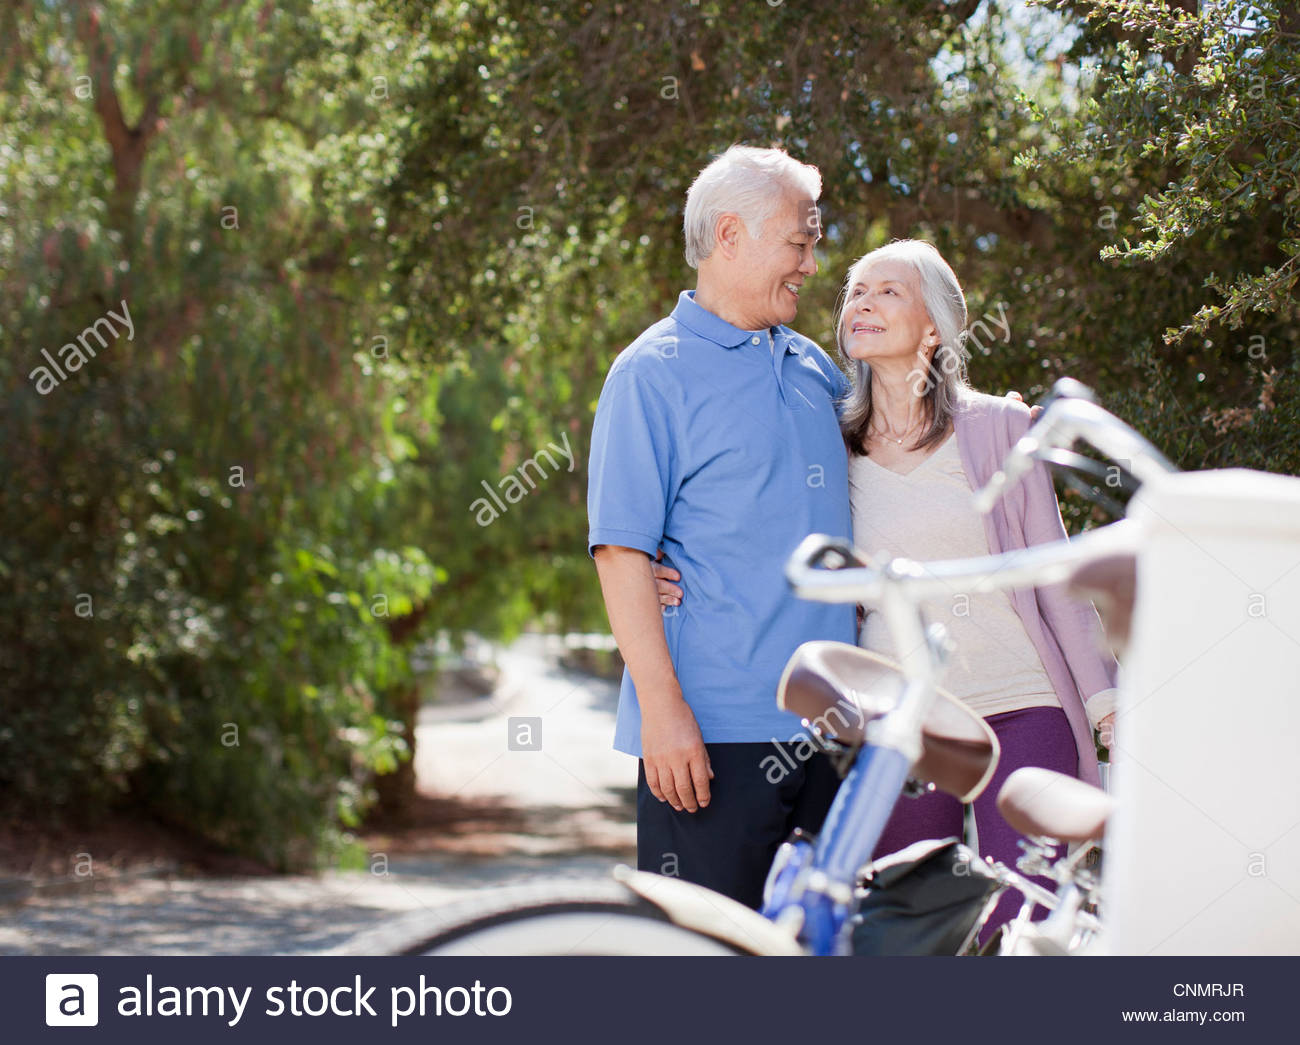 two older women cycling stock photos & two older women cycling stock